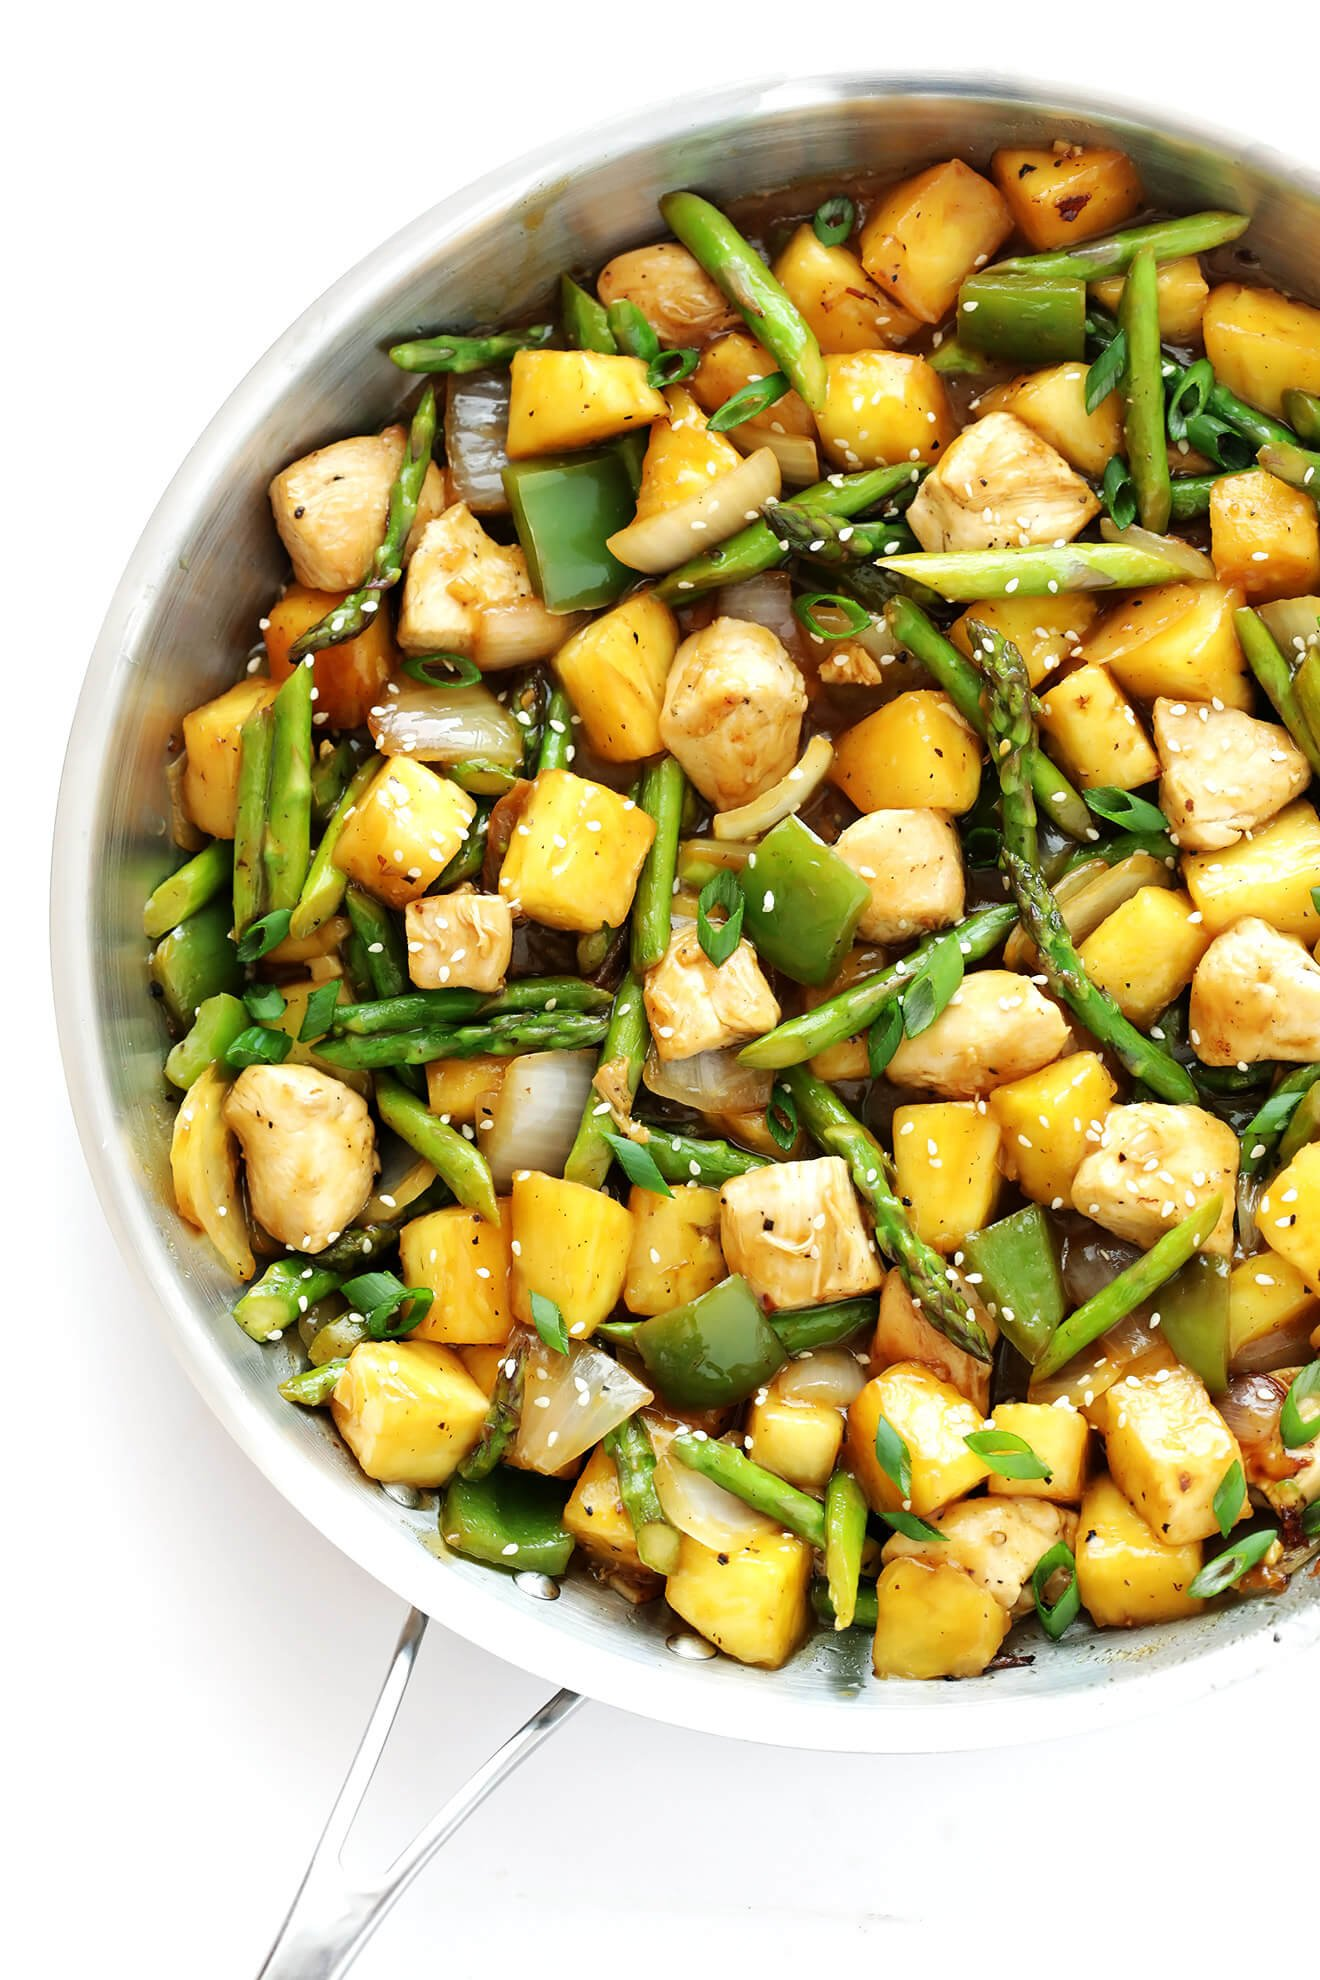 This delicious Pineapple Ginger Chicken Stir-Fry is totally delicious, and ready to go in about 20 minutes! | gimmesomeoven.com